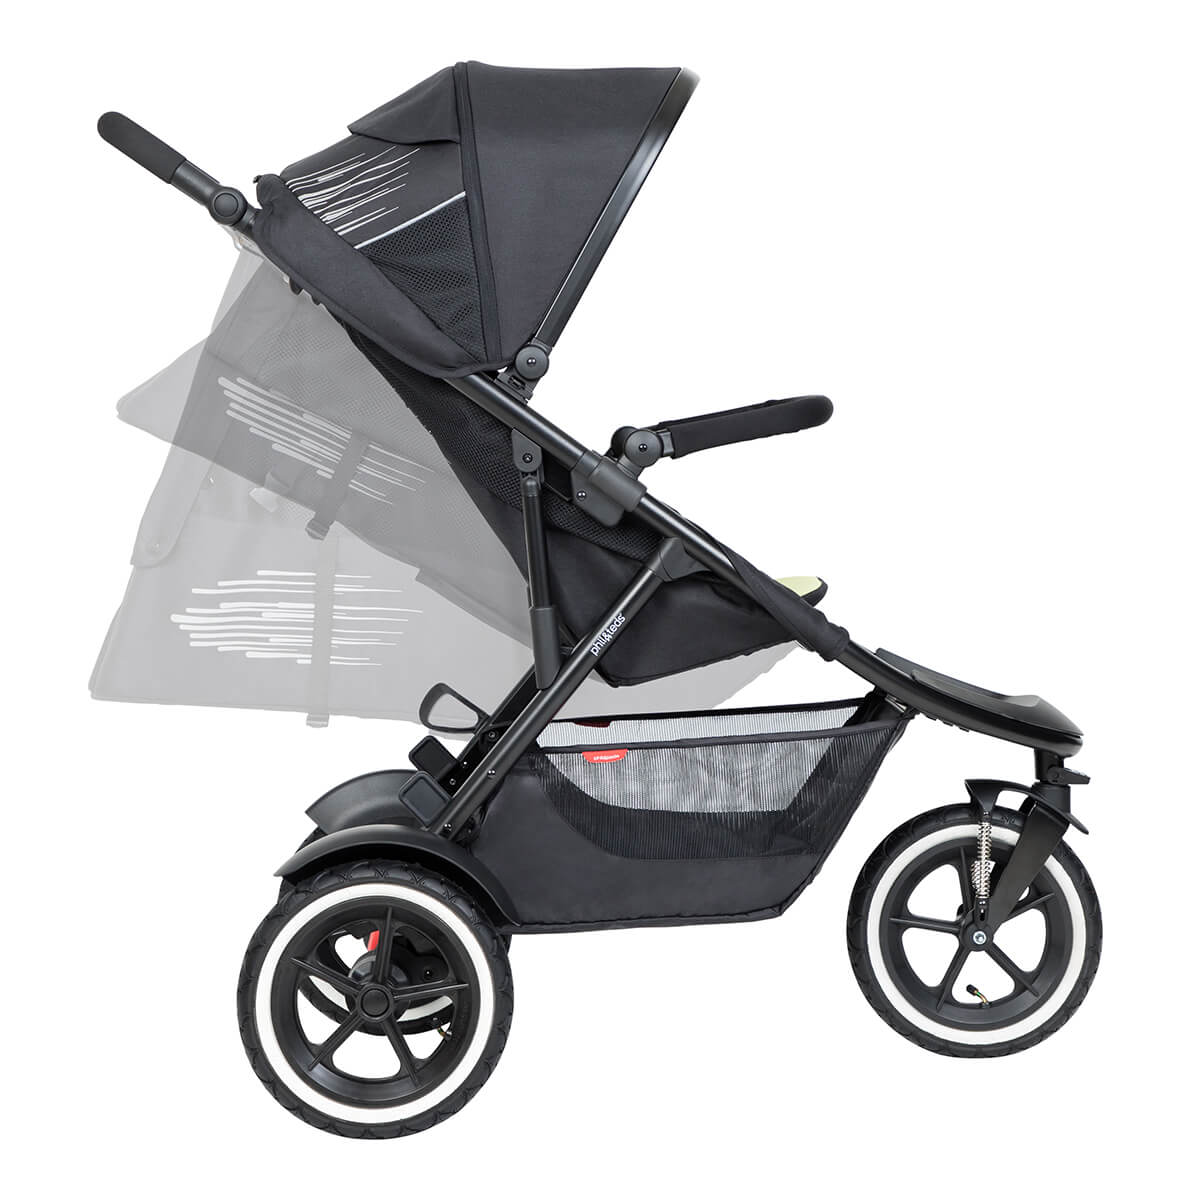 https://cdn.accentuate.io/4509528096856/19272668184664/philteds-sport-buggy-can-recline-in-multiple-angles-including-full-recline-for-newborn-baby-v1626484416381.jpg?1200x1200